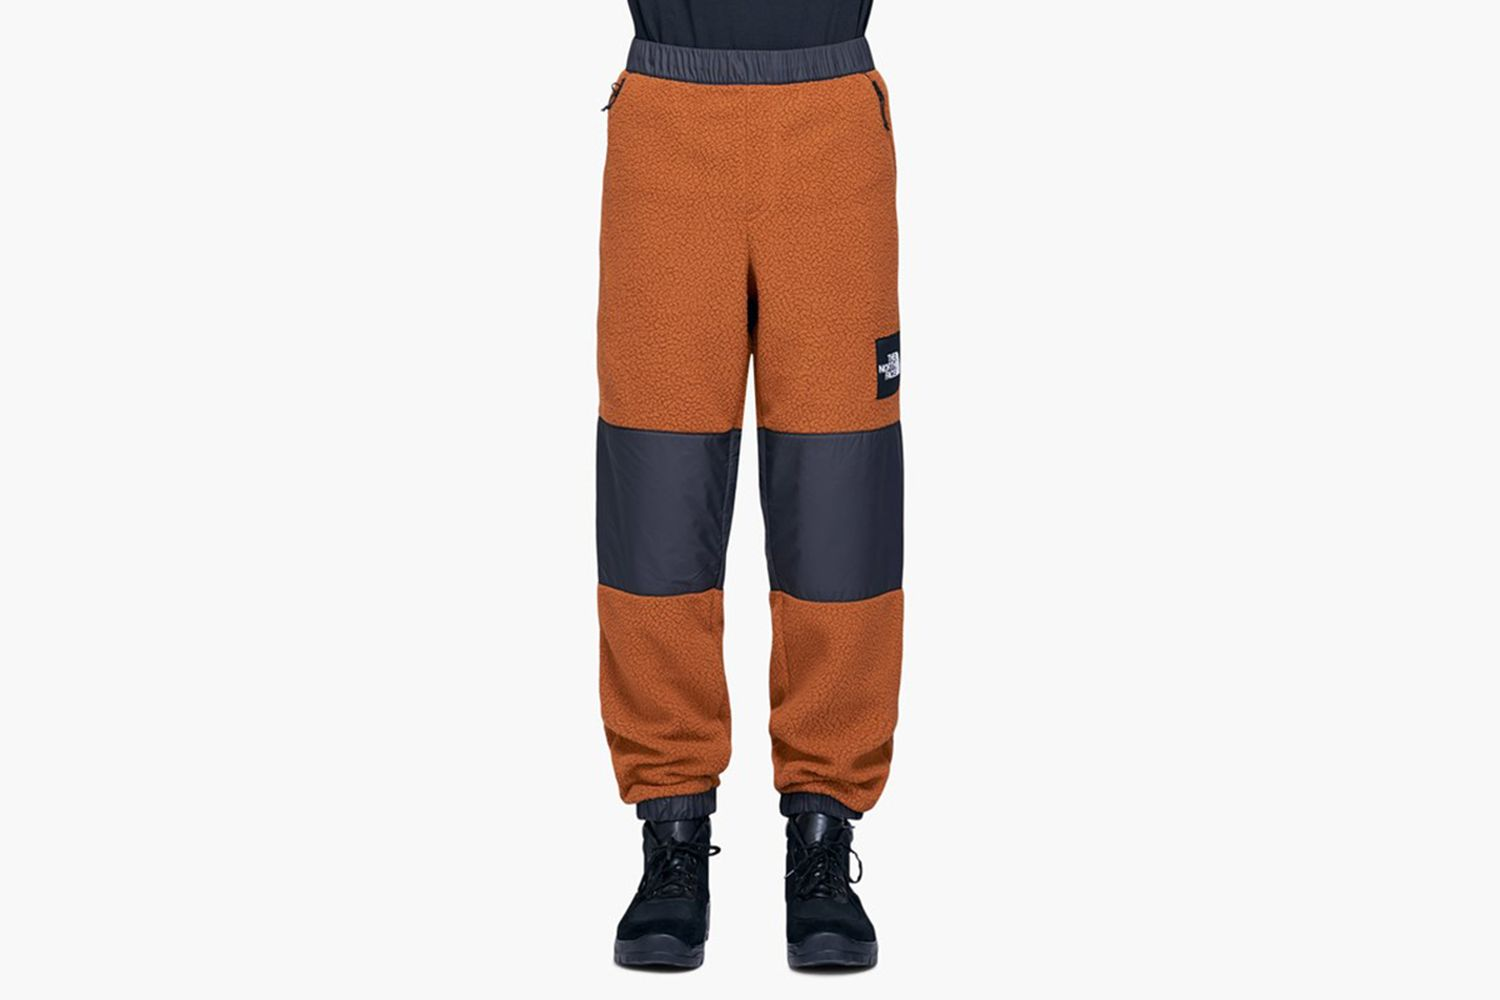 Denali Fleece Pants